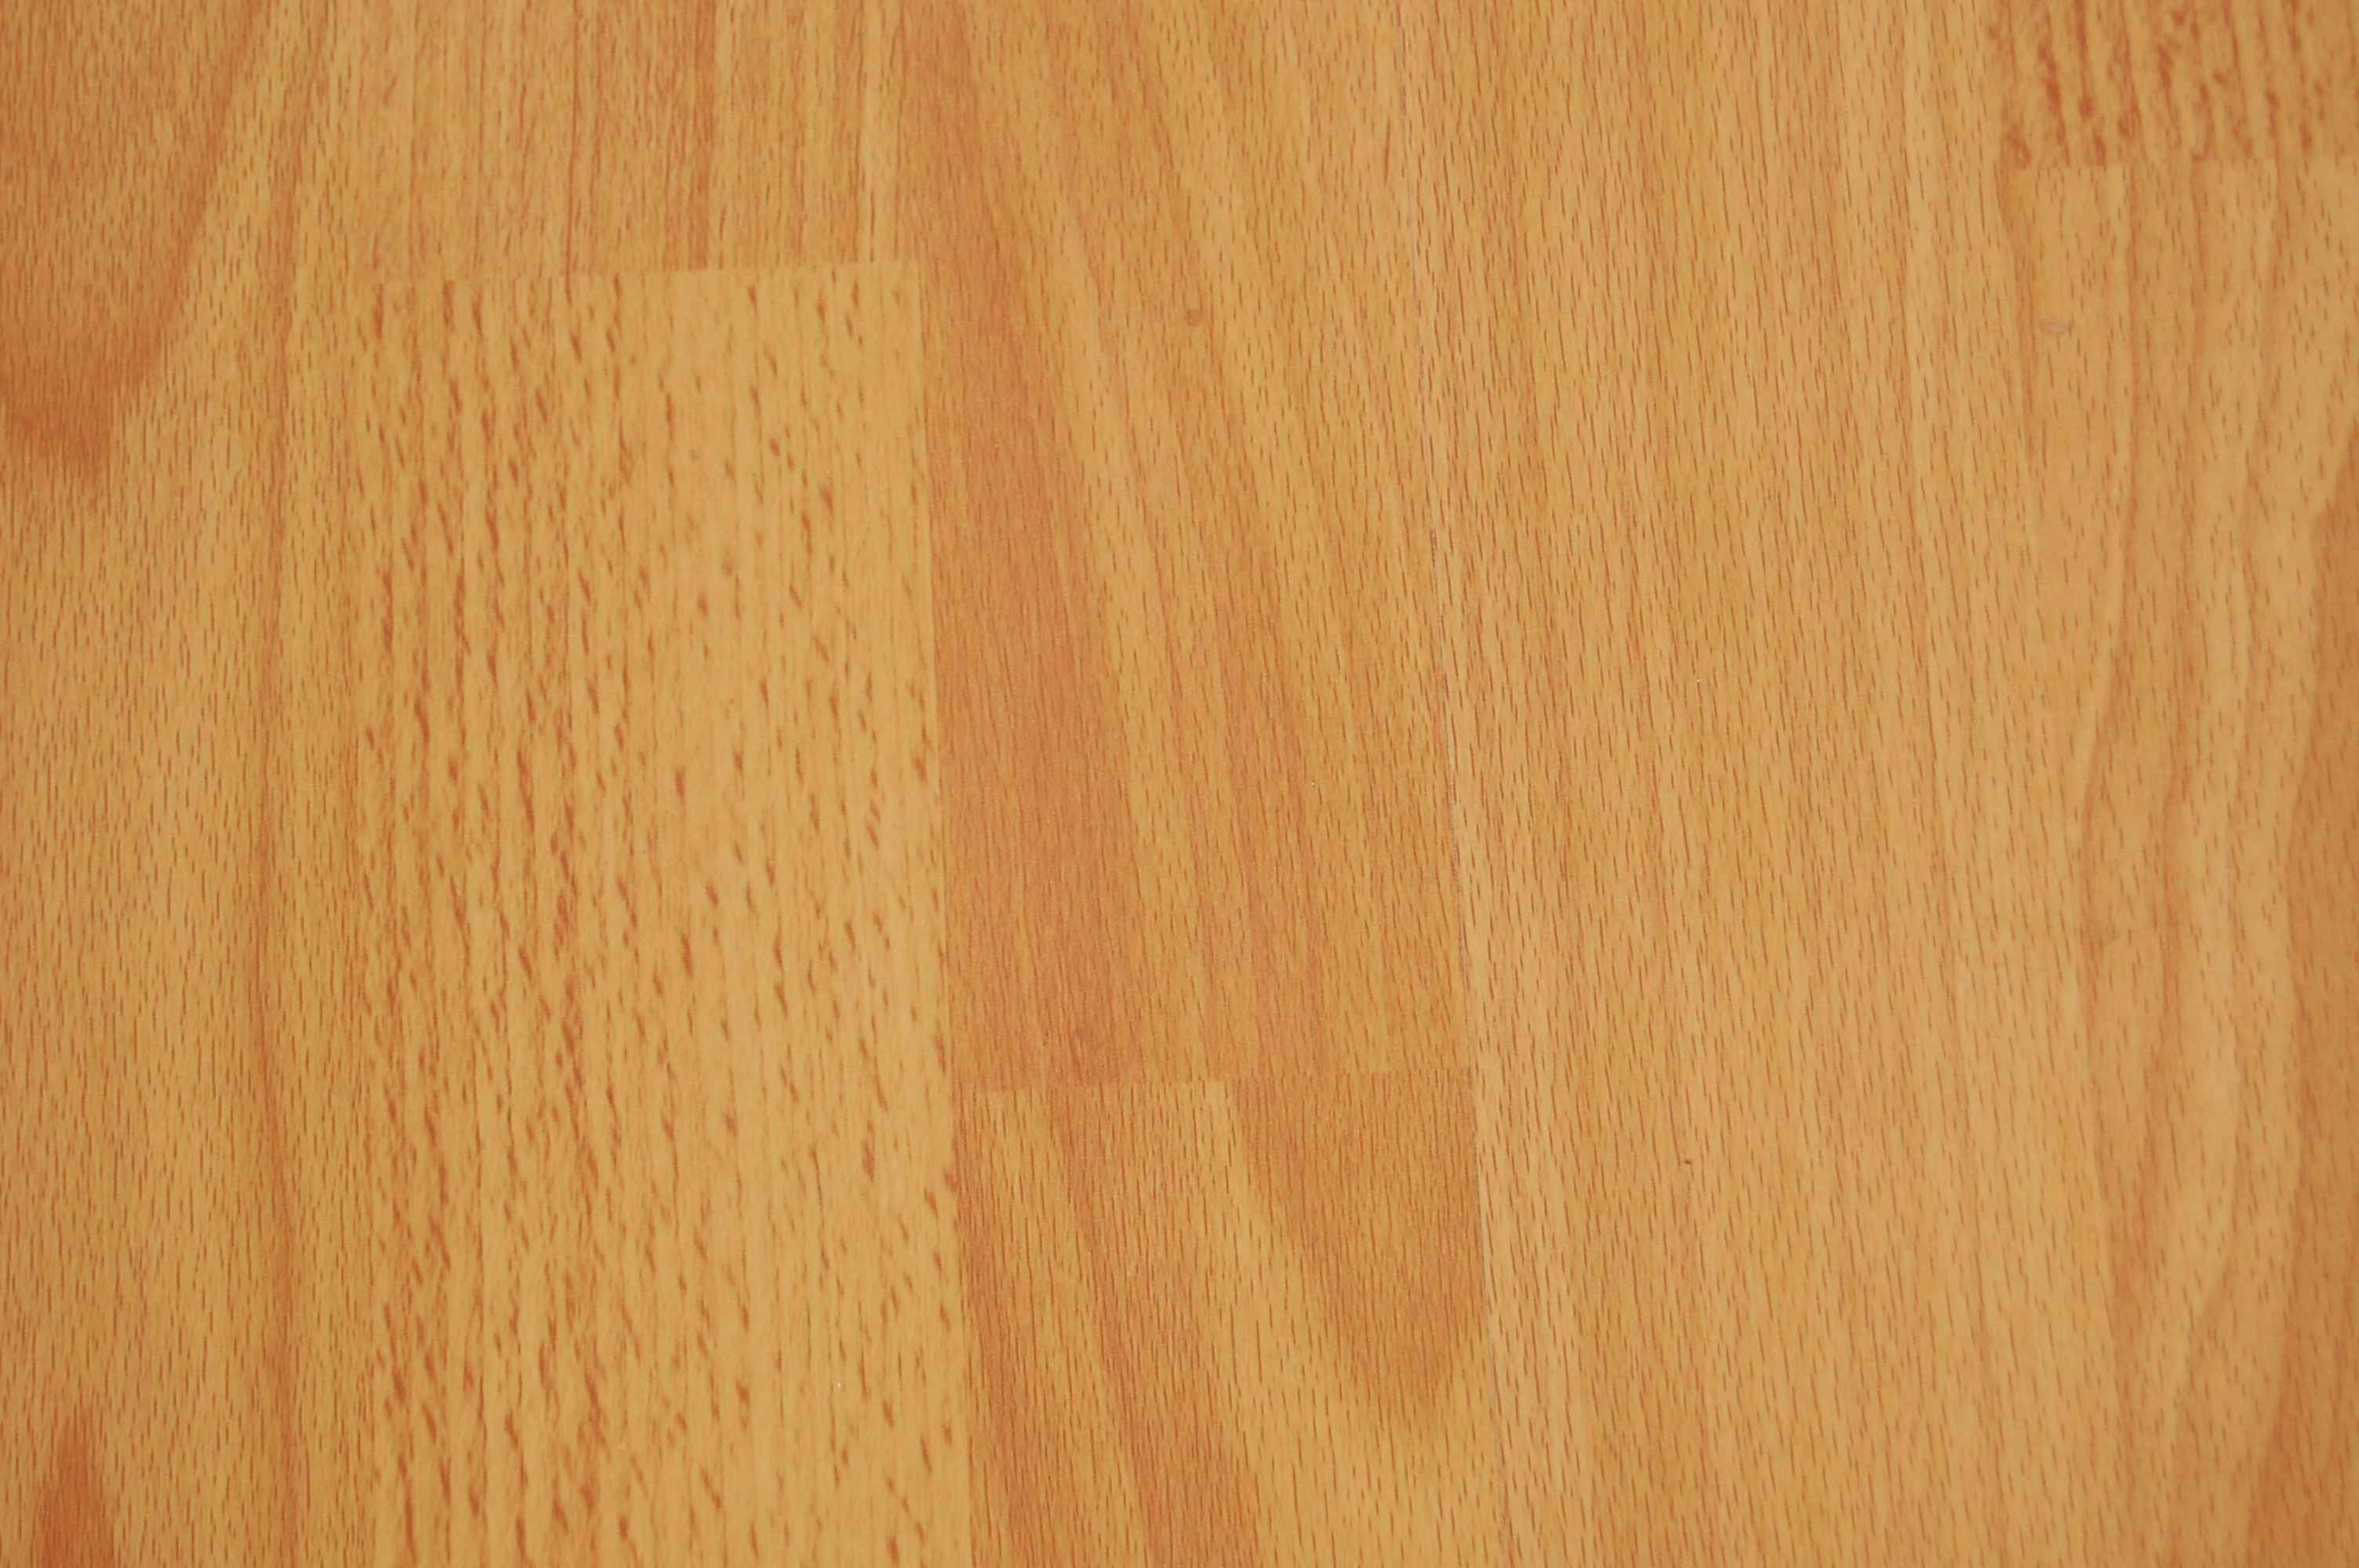 Laminate flooring wood and laminate flooring for Hardwood laminate